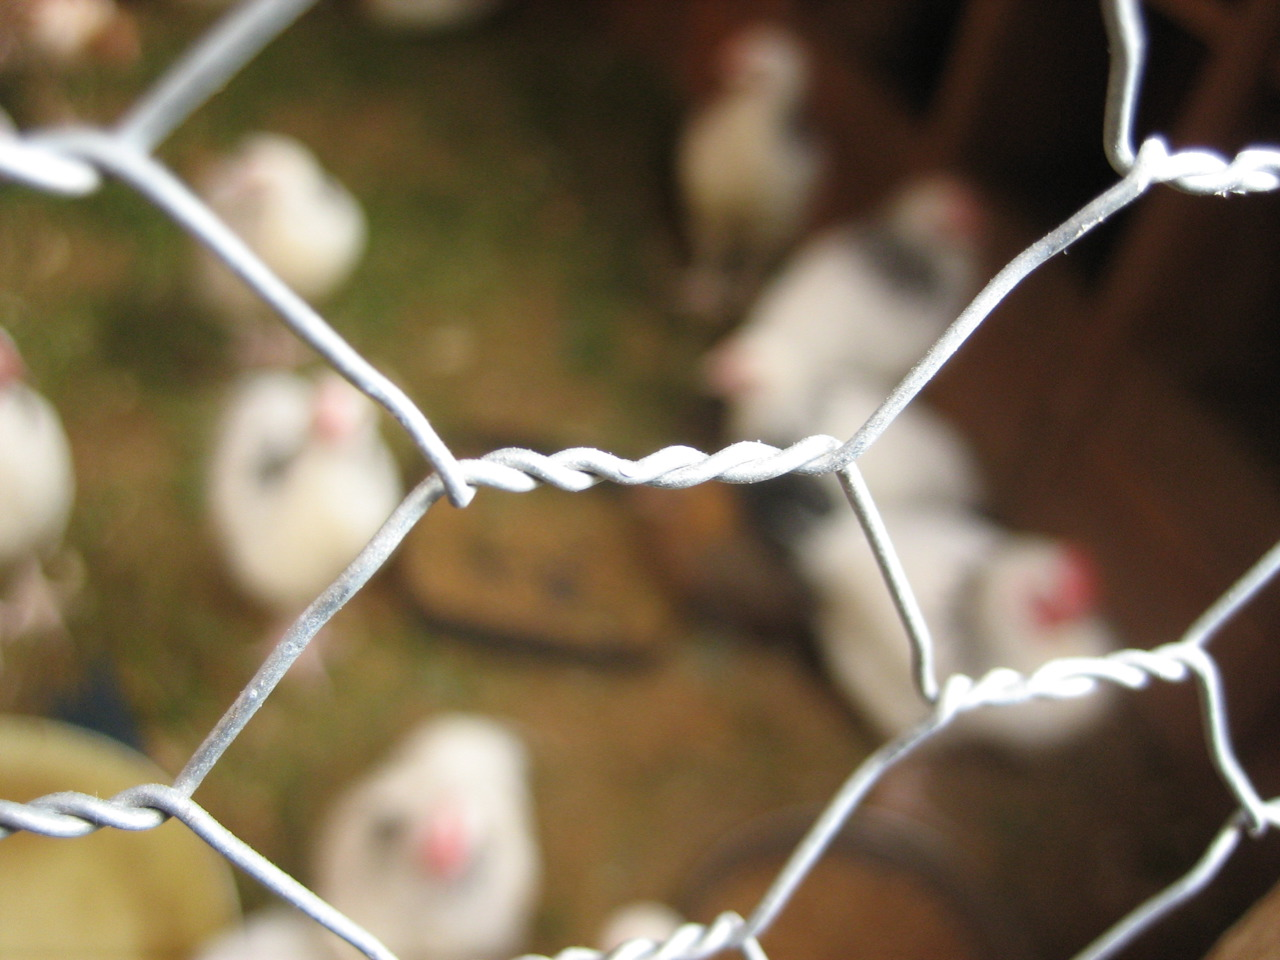 A chicken wire fence can be an effective deterrent; photo courtesy of Flickr cc/Nanimo